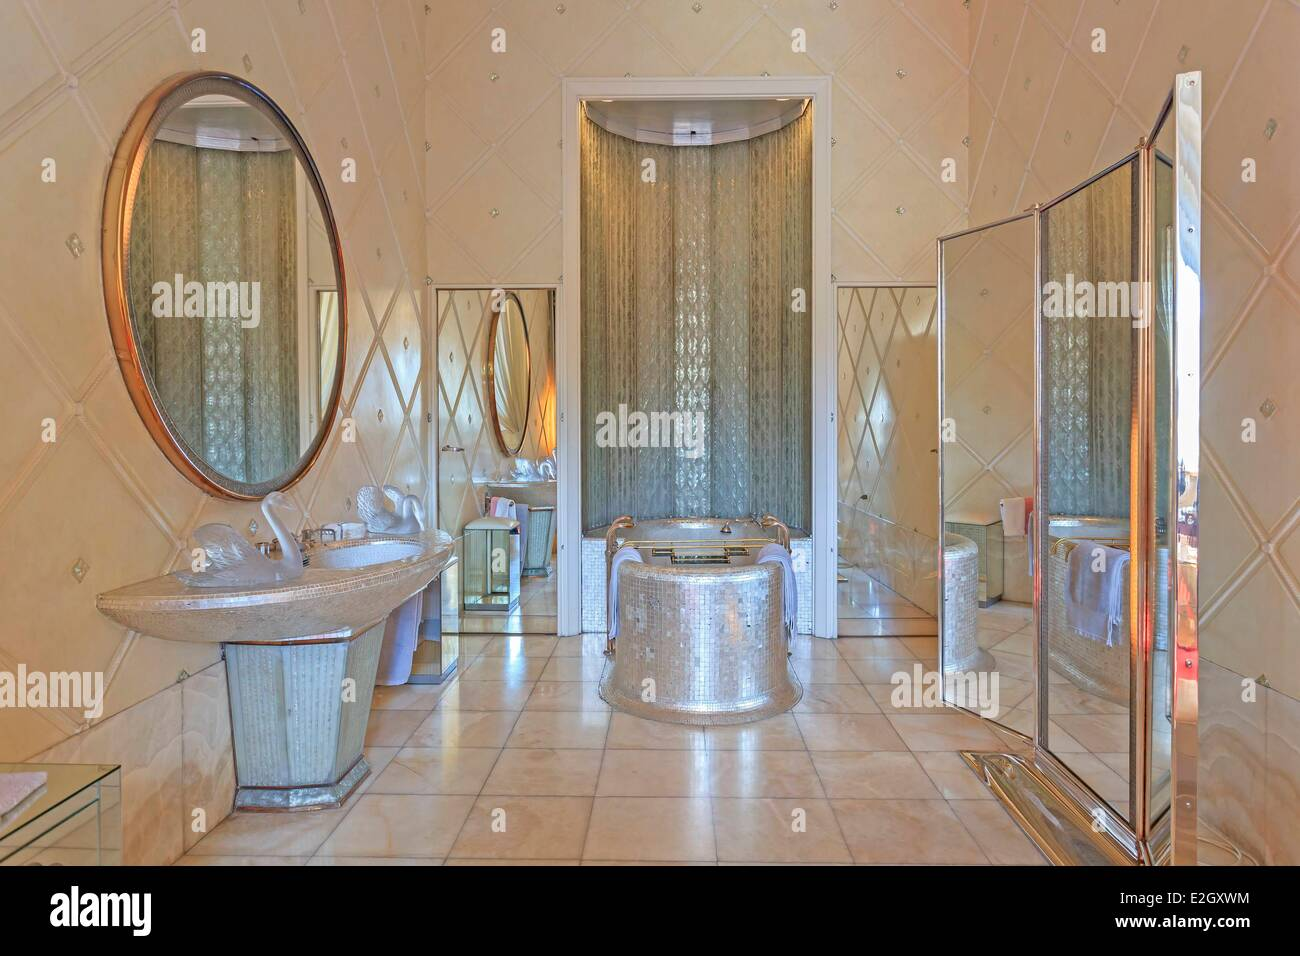 France Paris Quai d'Orsay hotel of Foreign Ministry Queen's bathroom Stock Photo